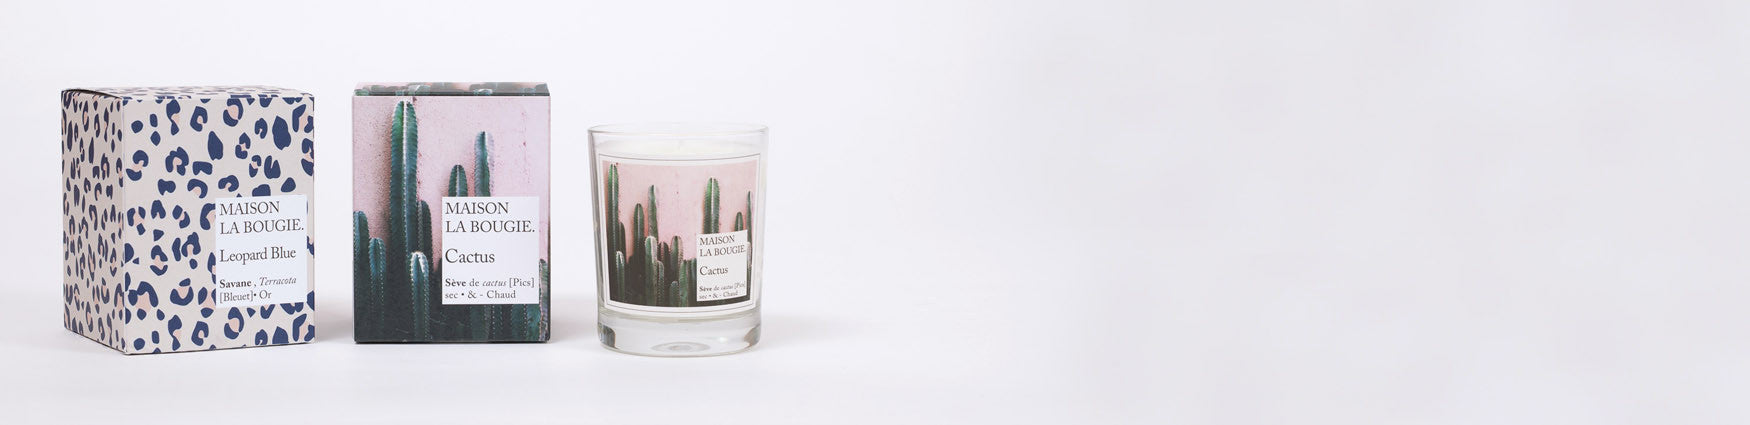 Maison La Bougie Candles in colourful packaging available from Roo's Beach UK